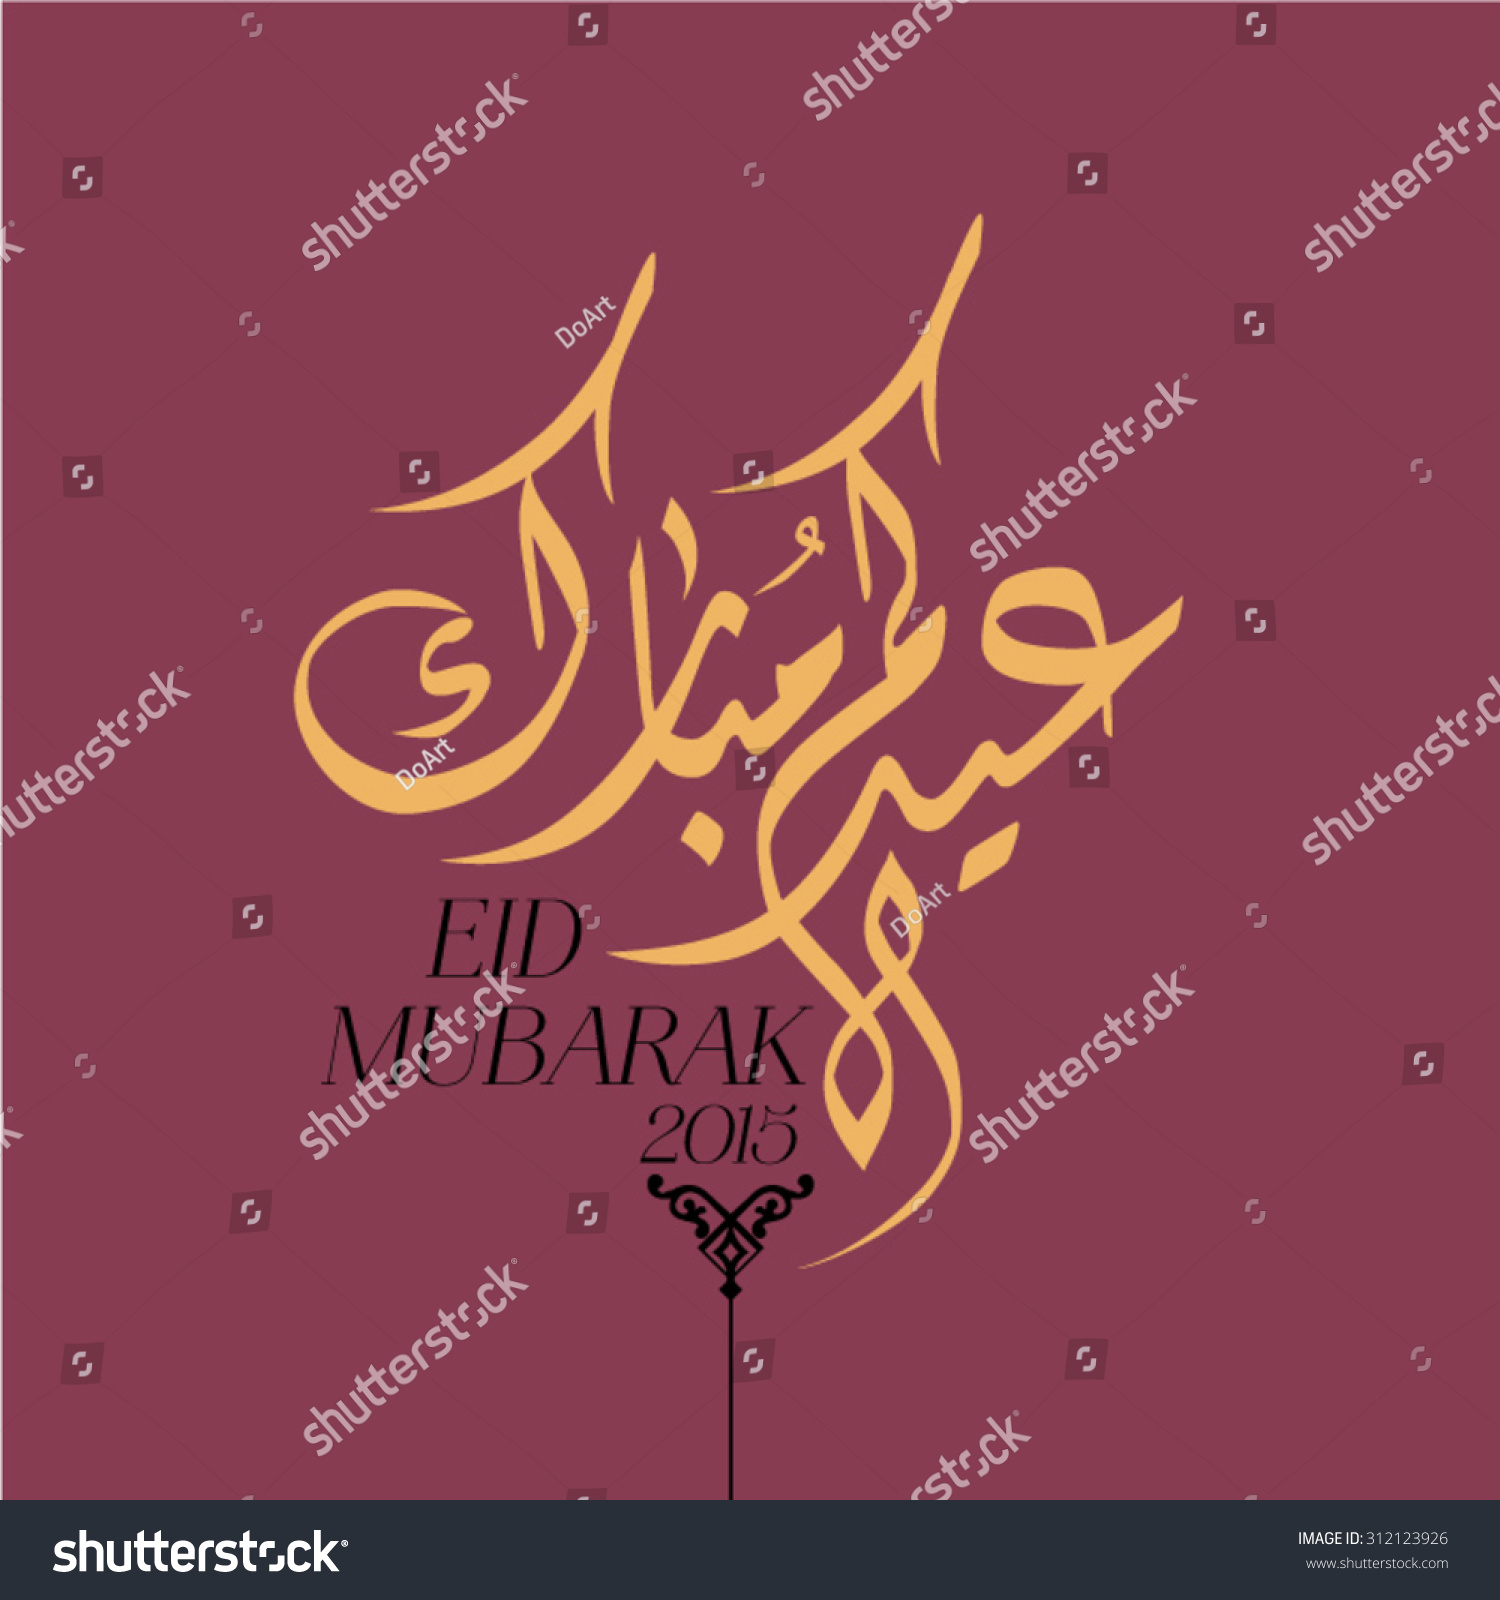 Eid mubarak greeting illustrator file arabic stock vector 312123926 eid mubarak greeting illustrator file in arabic calligraphy with a nice gold and gold finish can kristyandbryce Choice Image